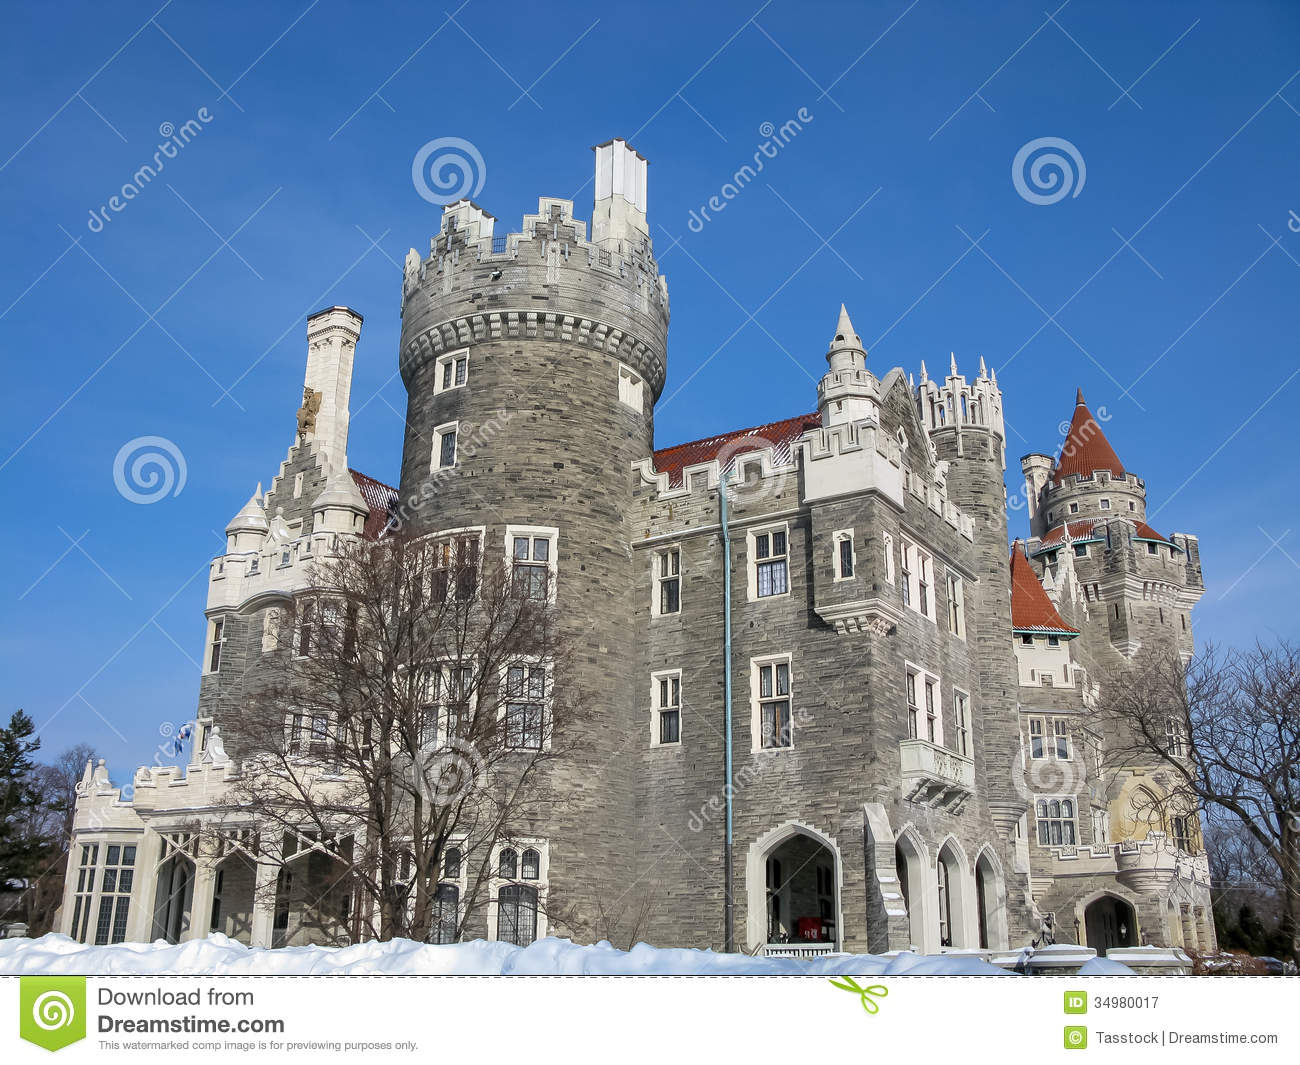 Casa loma in toronto canada editorial photography image for Casa loma mansion toronto